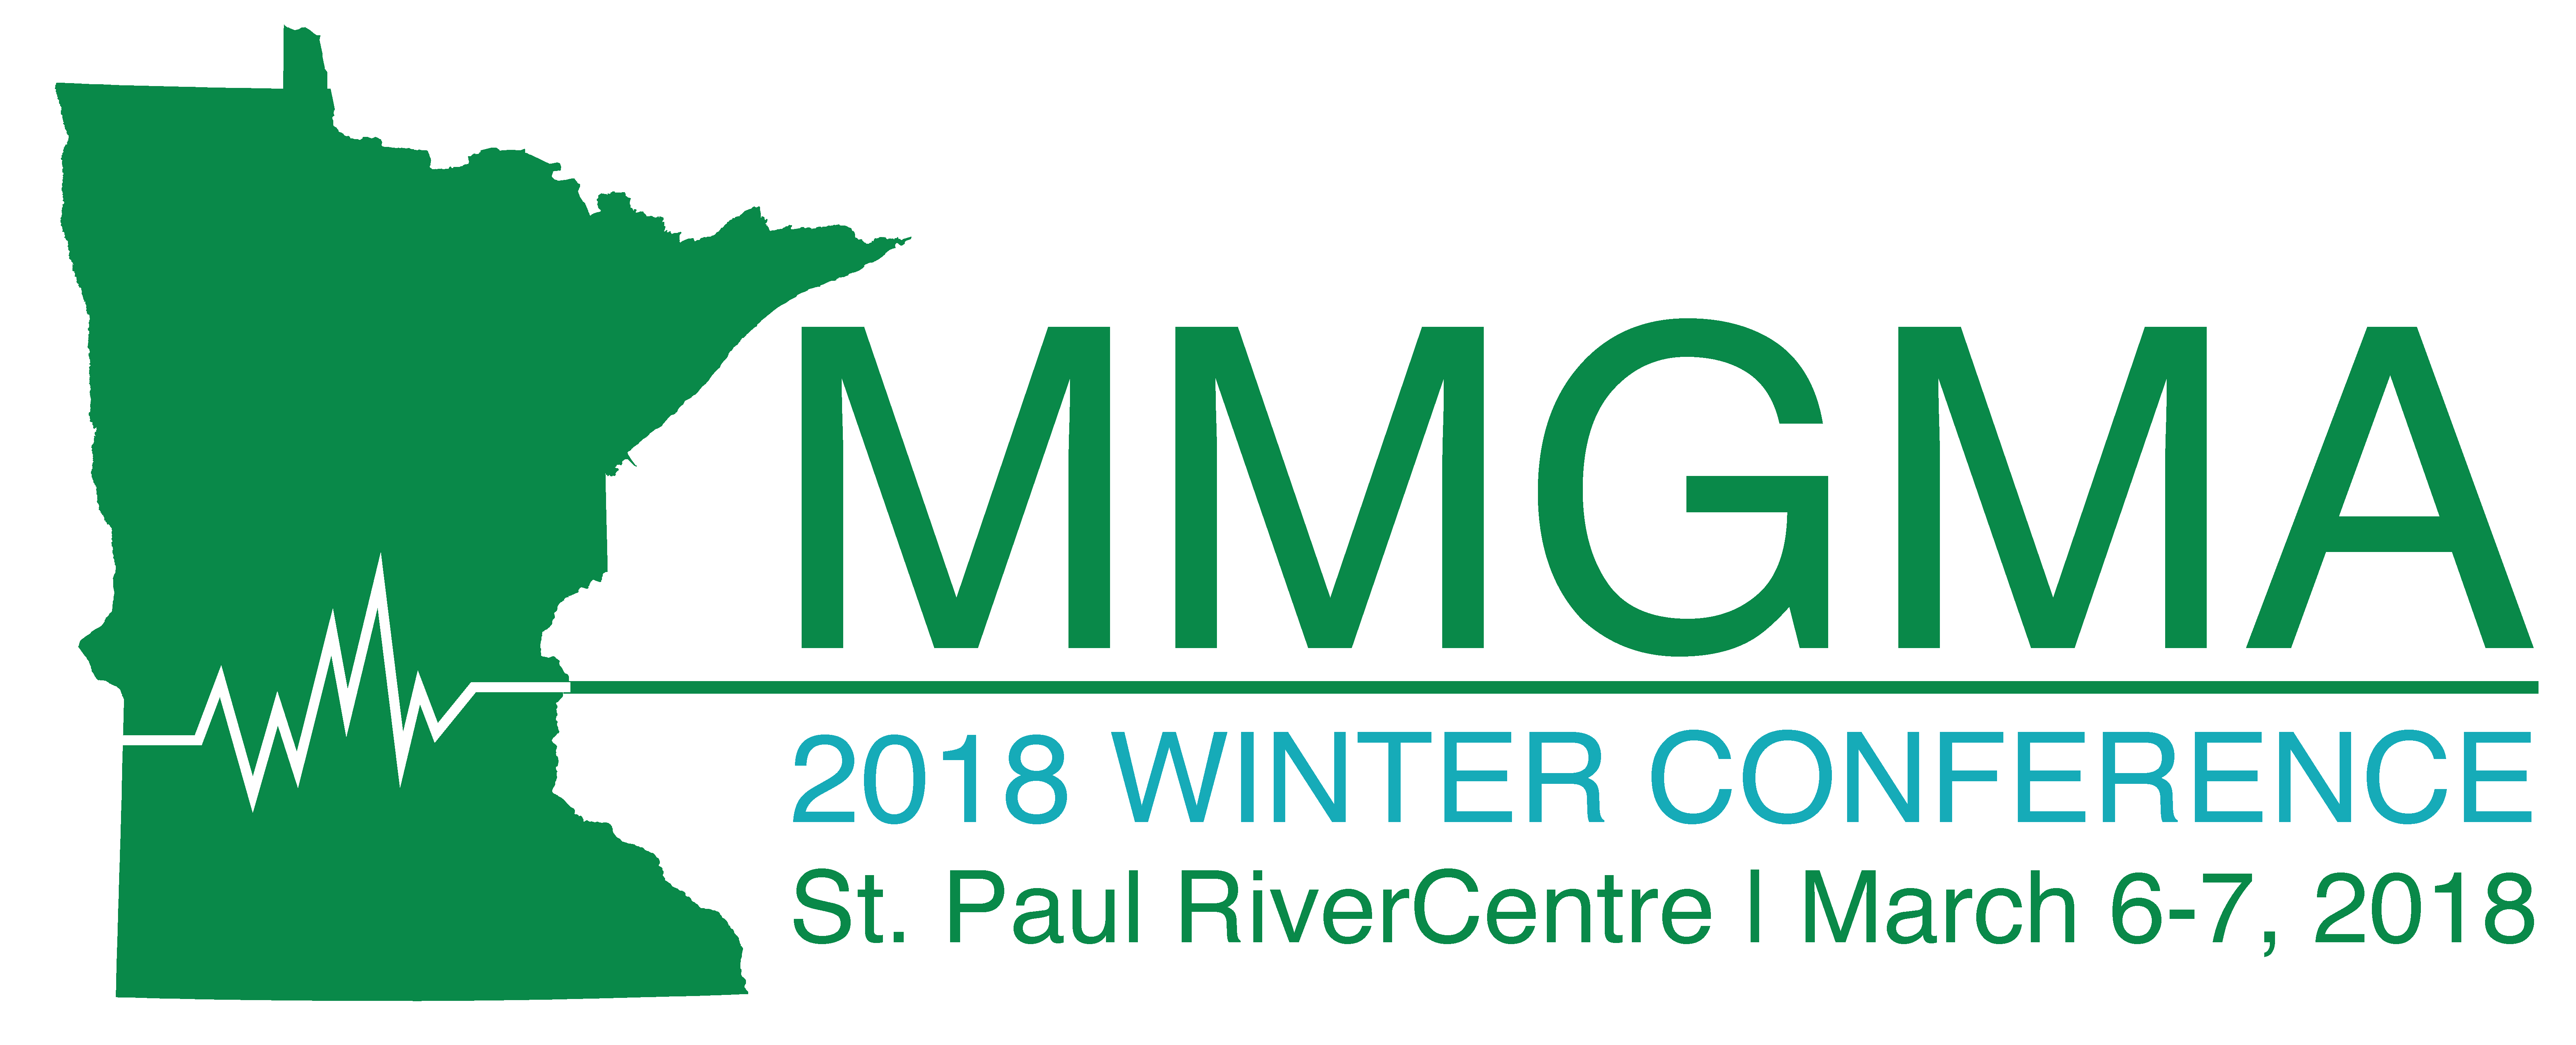 2018 MMGMA Winter Conference at the St. Paul RiverCentre